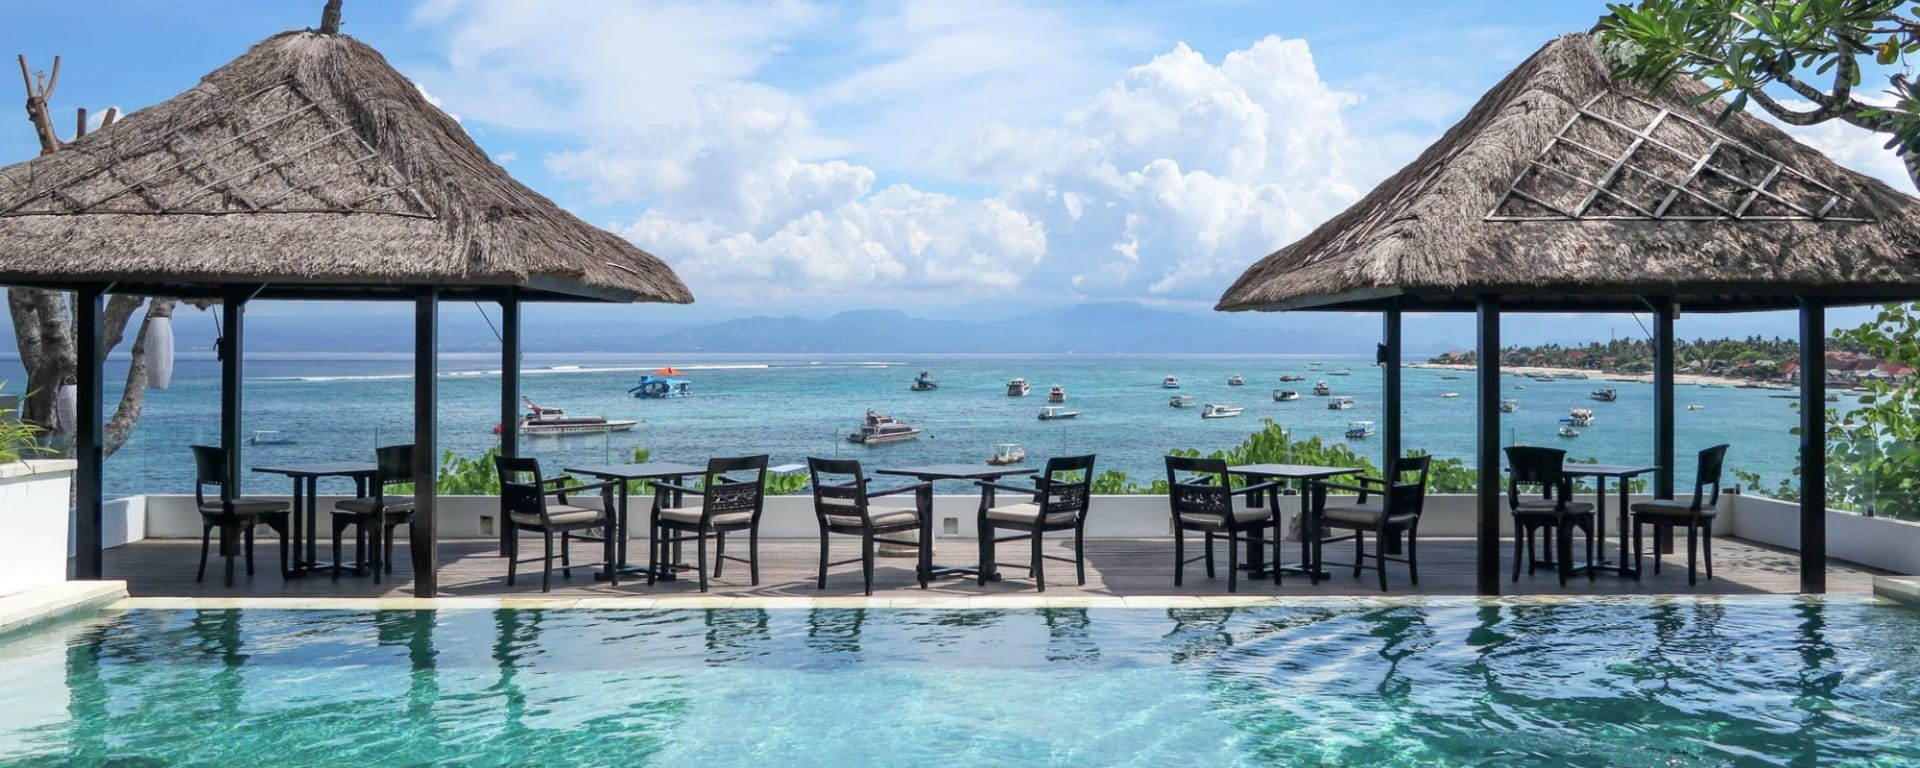 Batu Karang Lembongan Resort & Spa à Nusa Lembongan: Muntigs pool